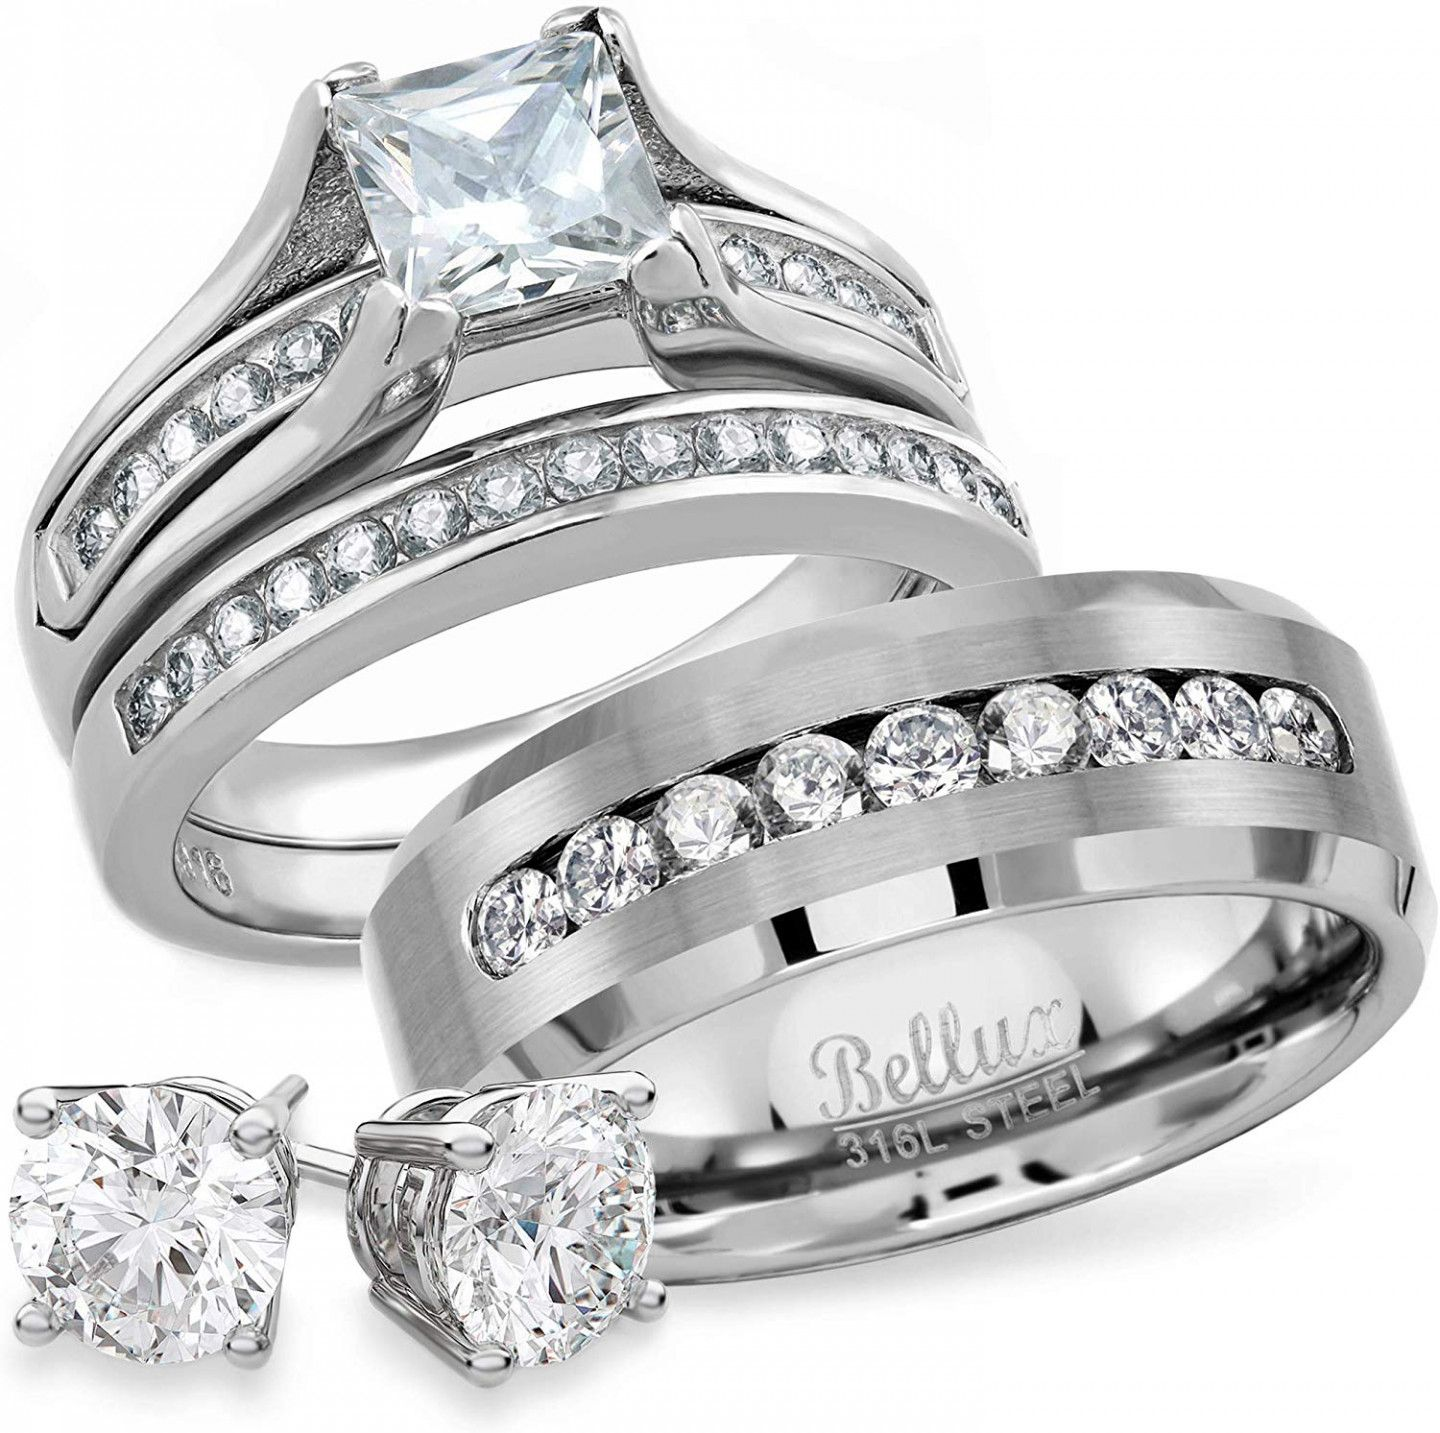 8 Exciting Parts Of Attending Wedding Rings Sets For Him